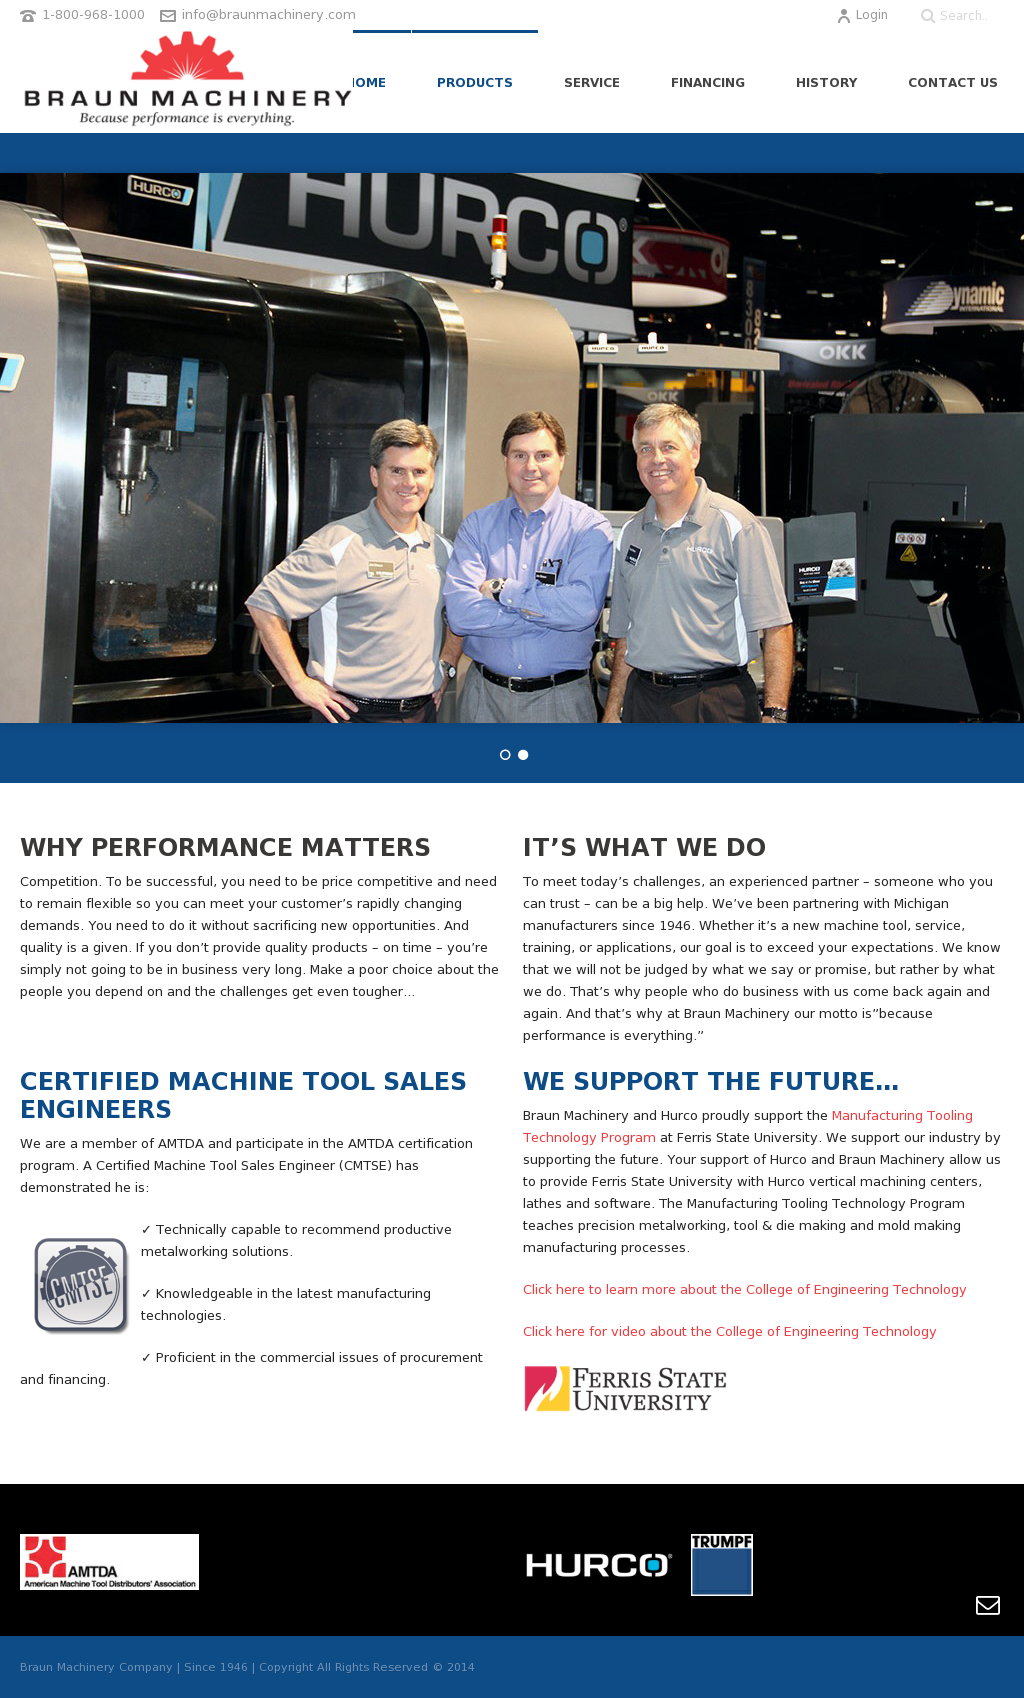 Braun Machinery Competitors, Revenue and Employees - Owler